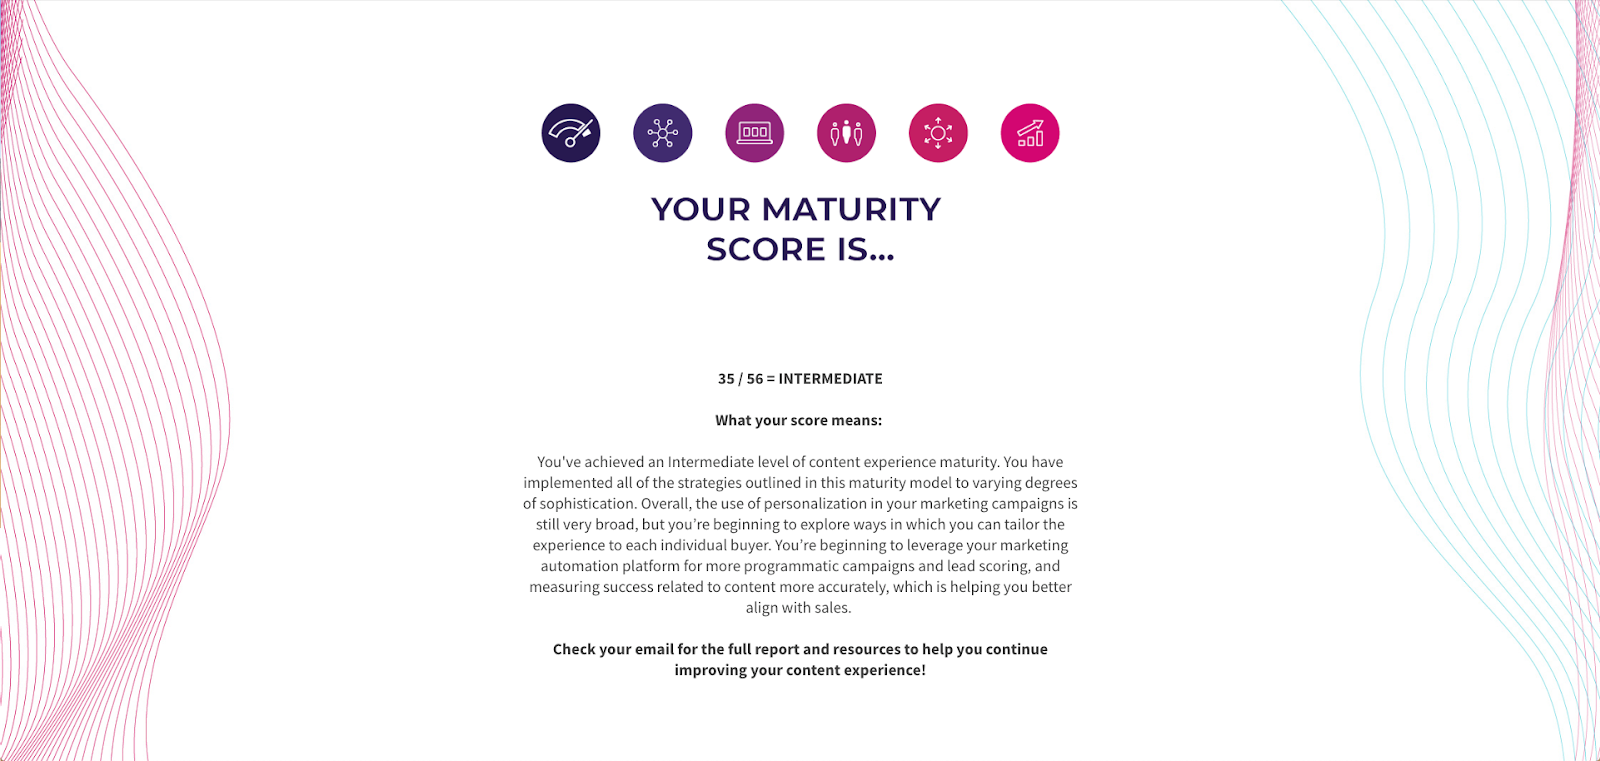 Content Experience Maturity Assessment Score on a Webpage